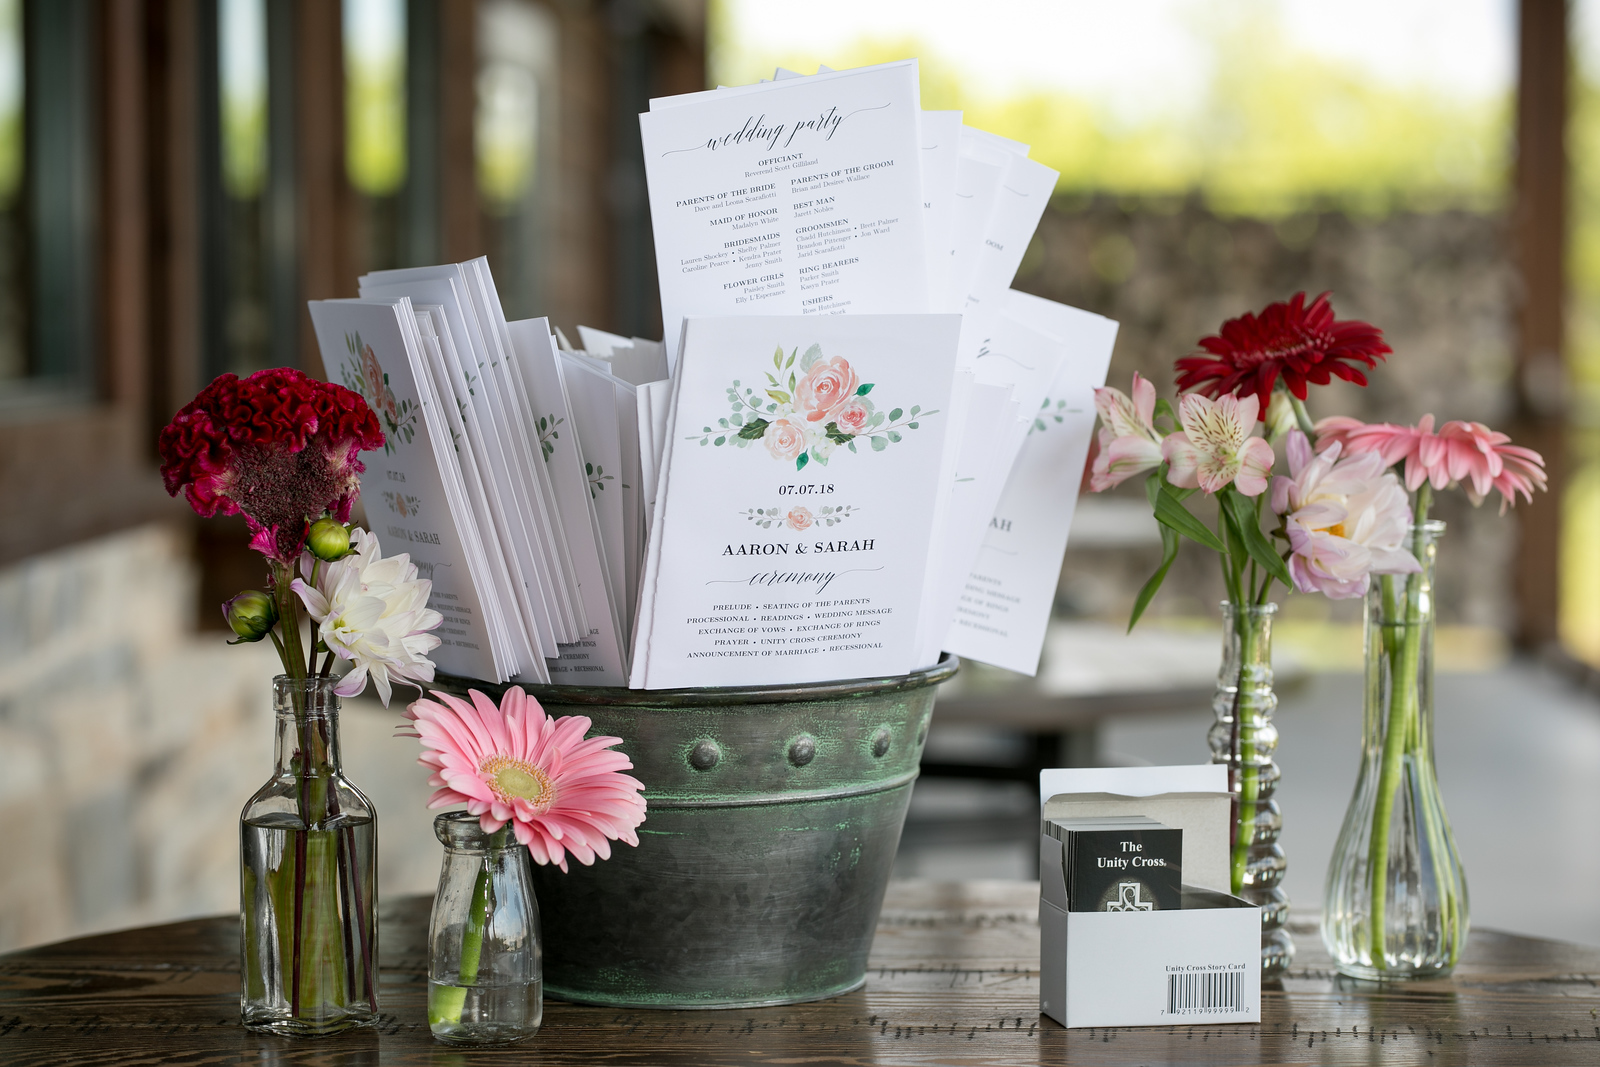 wedding programs in a galvanized bucket with rustic flower vases on a wooden table outside